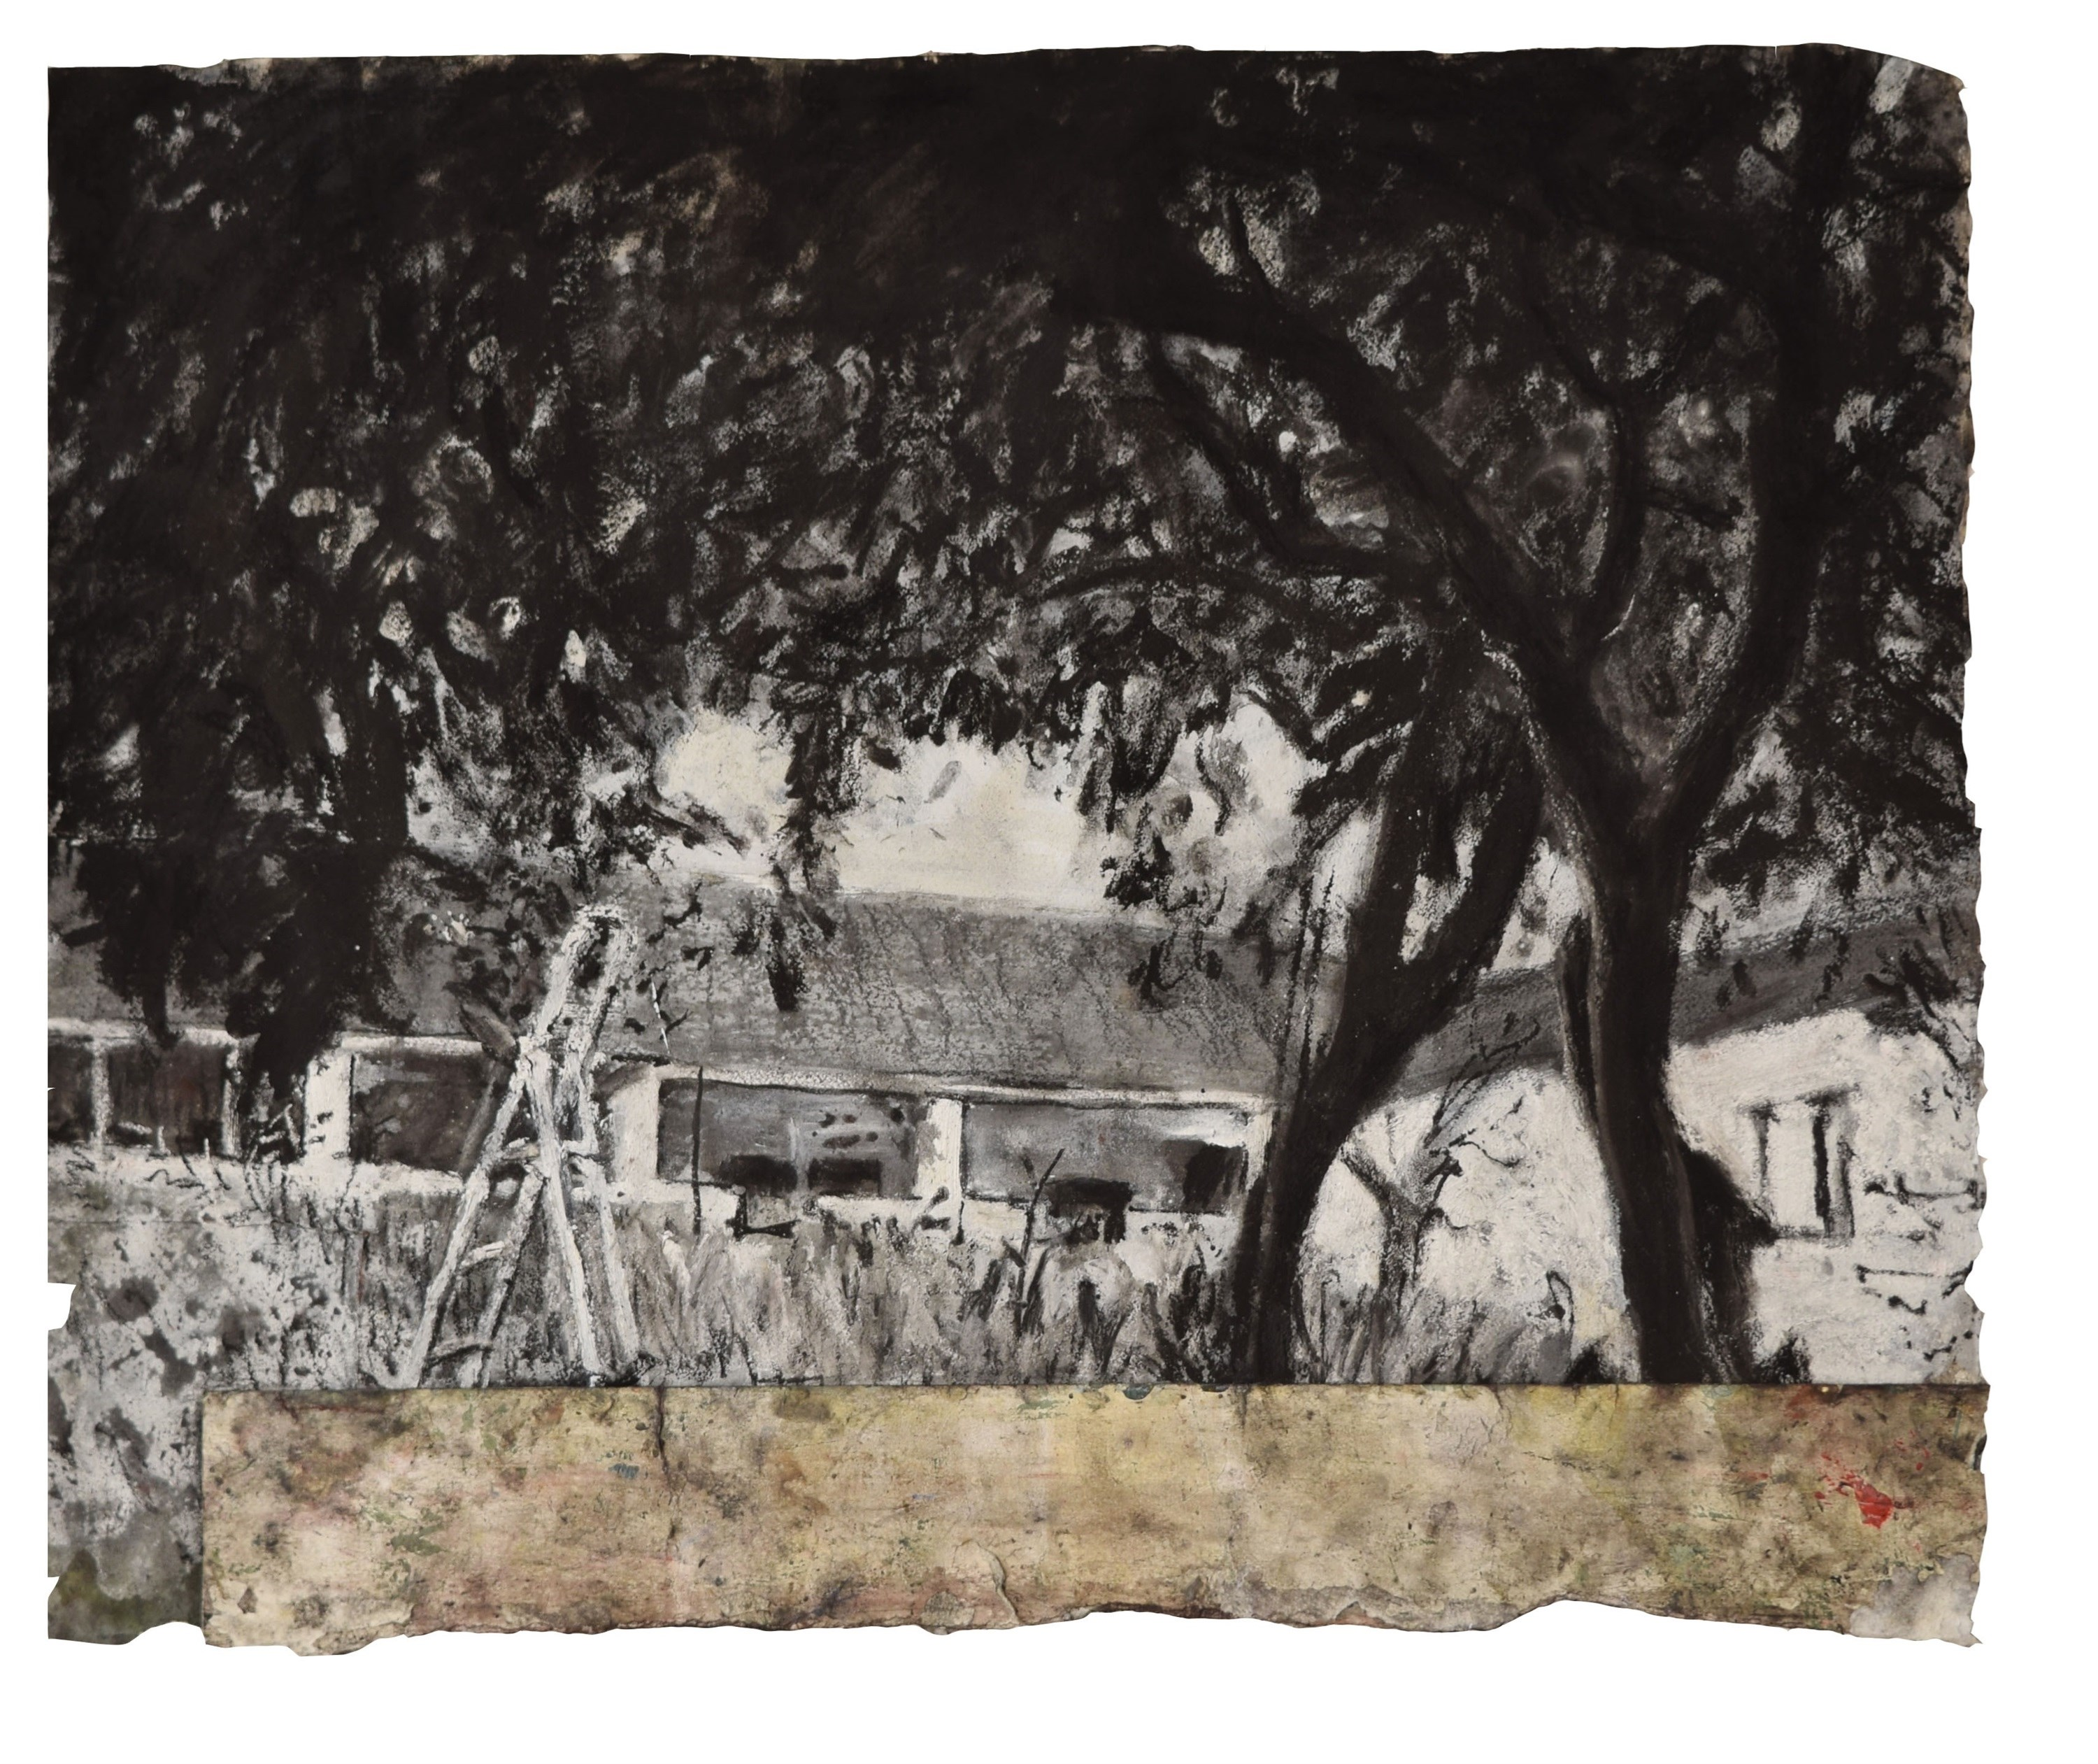 Sem título, original Landscape Charcoal Drawing and Illustration by Tiago Santos